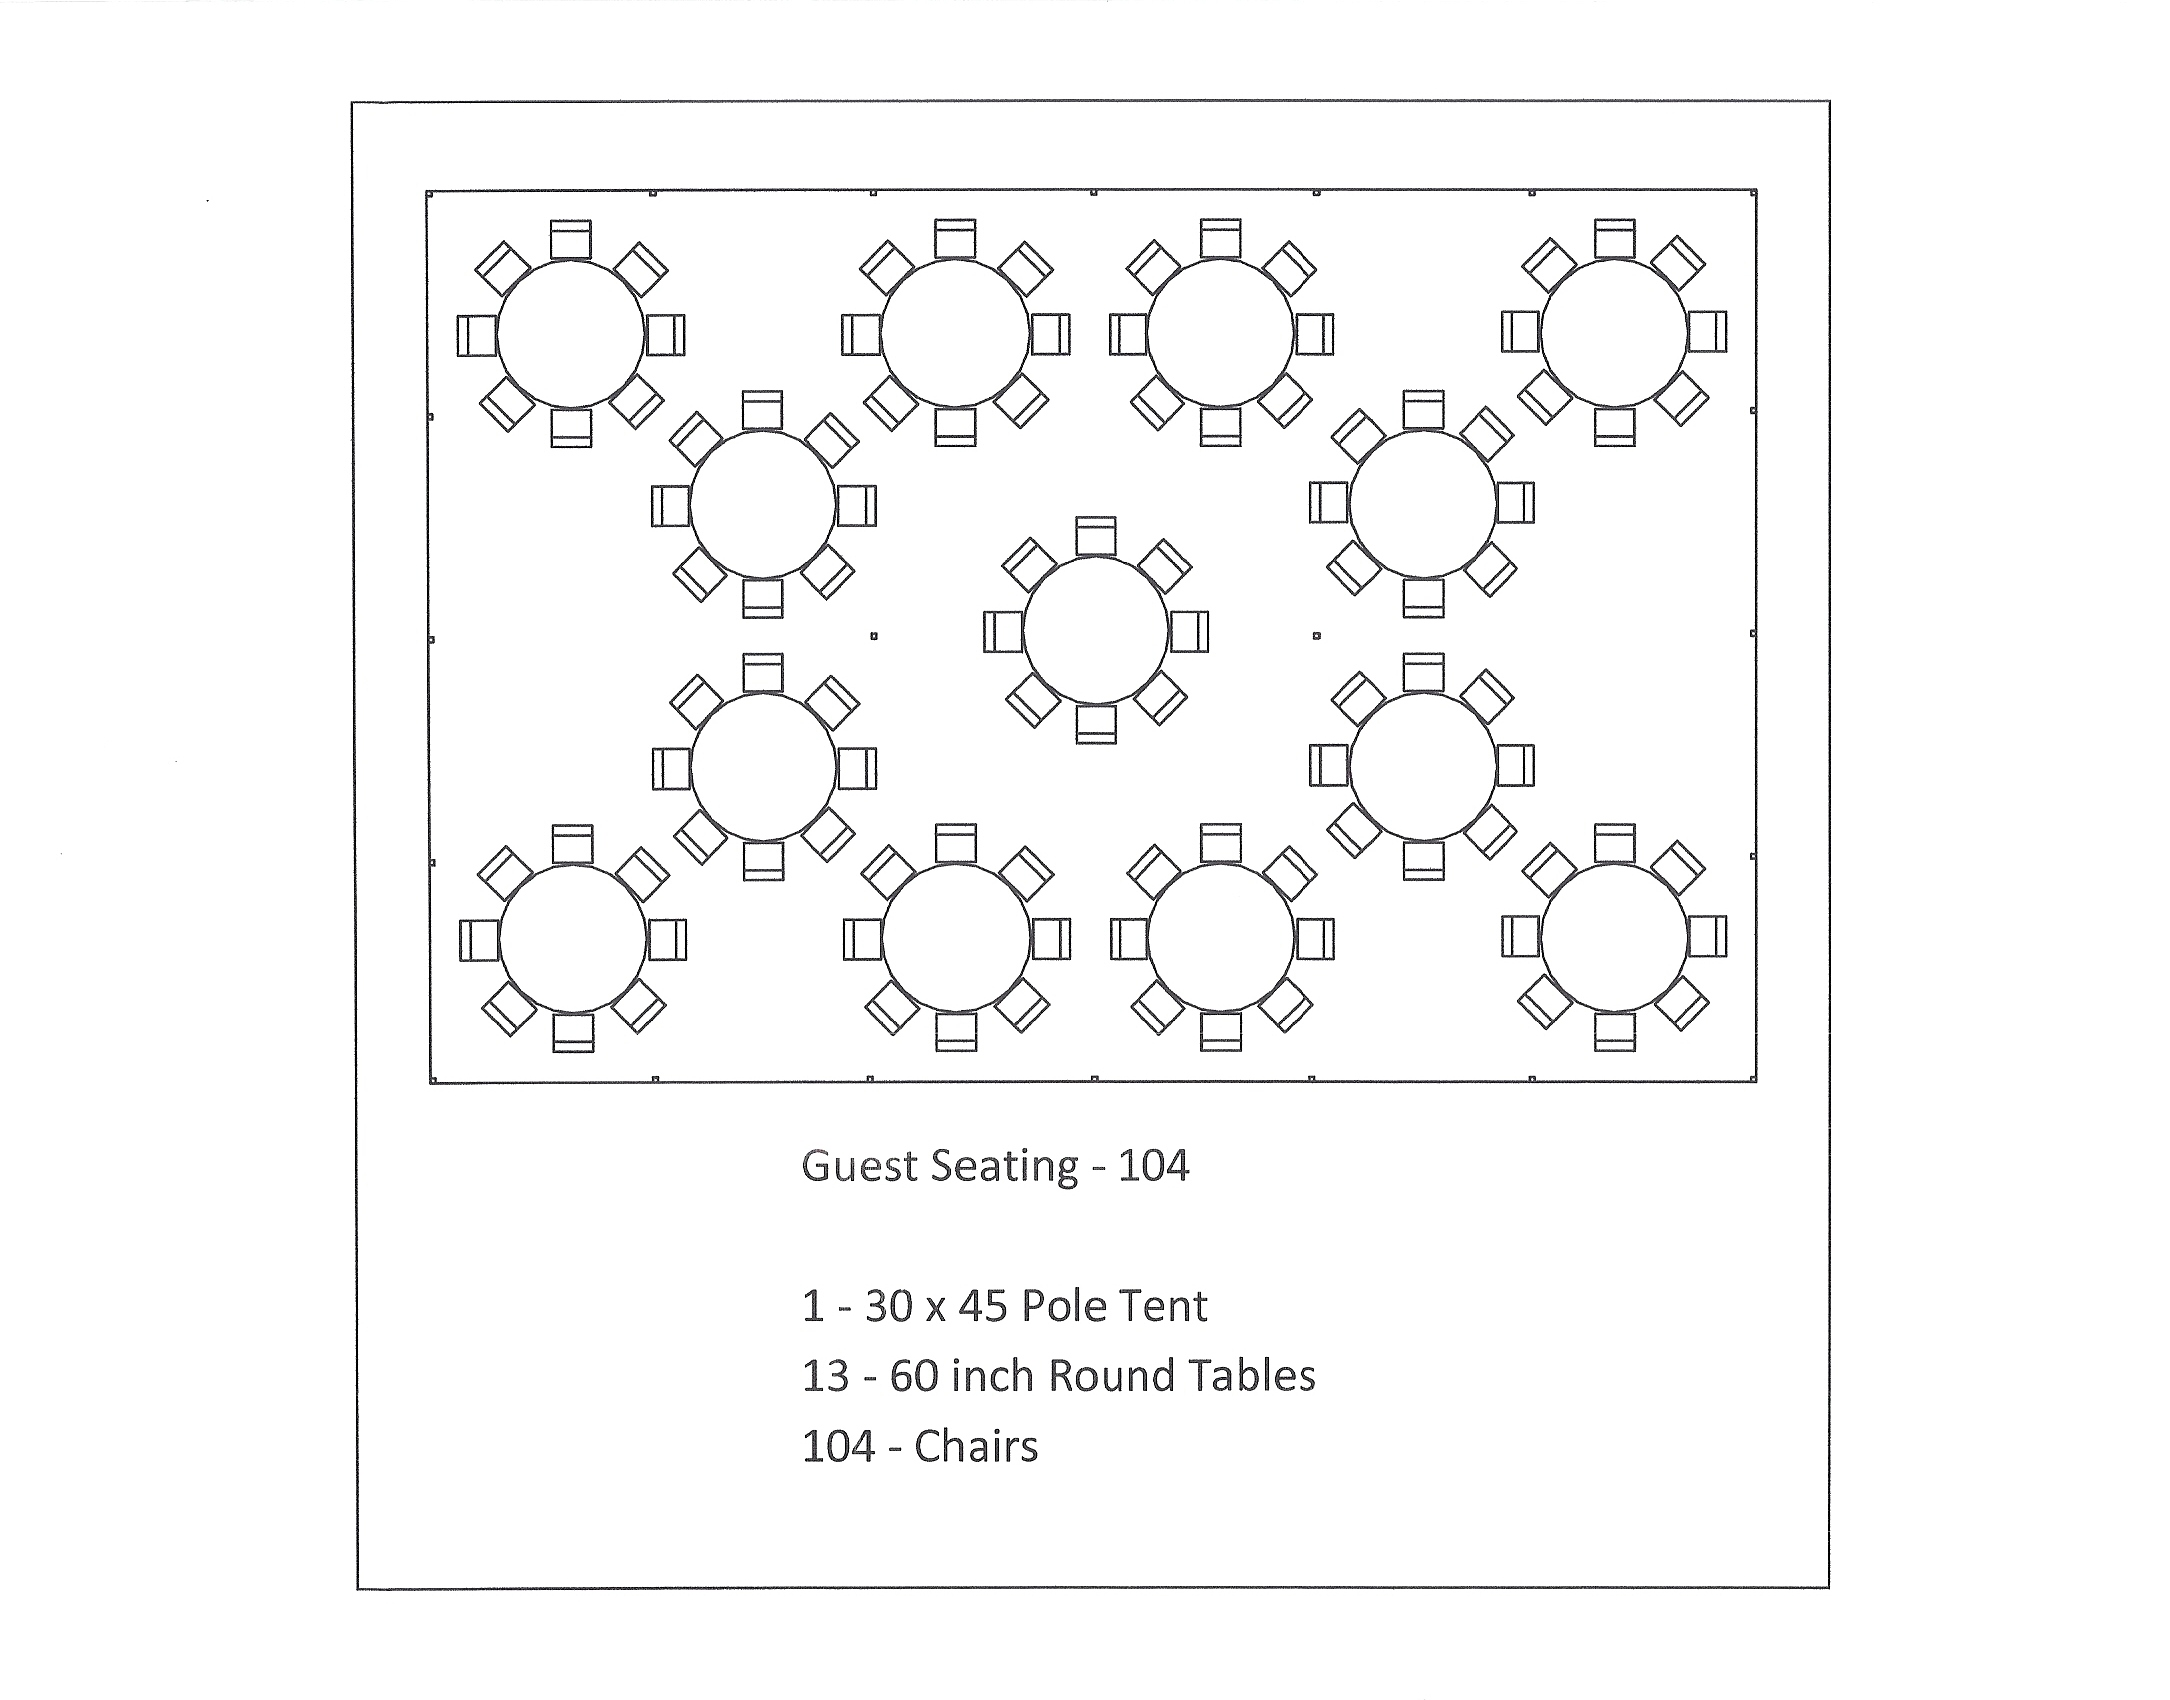 30 x 45 pole tent seating arrangements for 12 rules of the round table